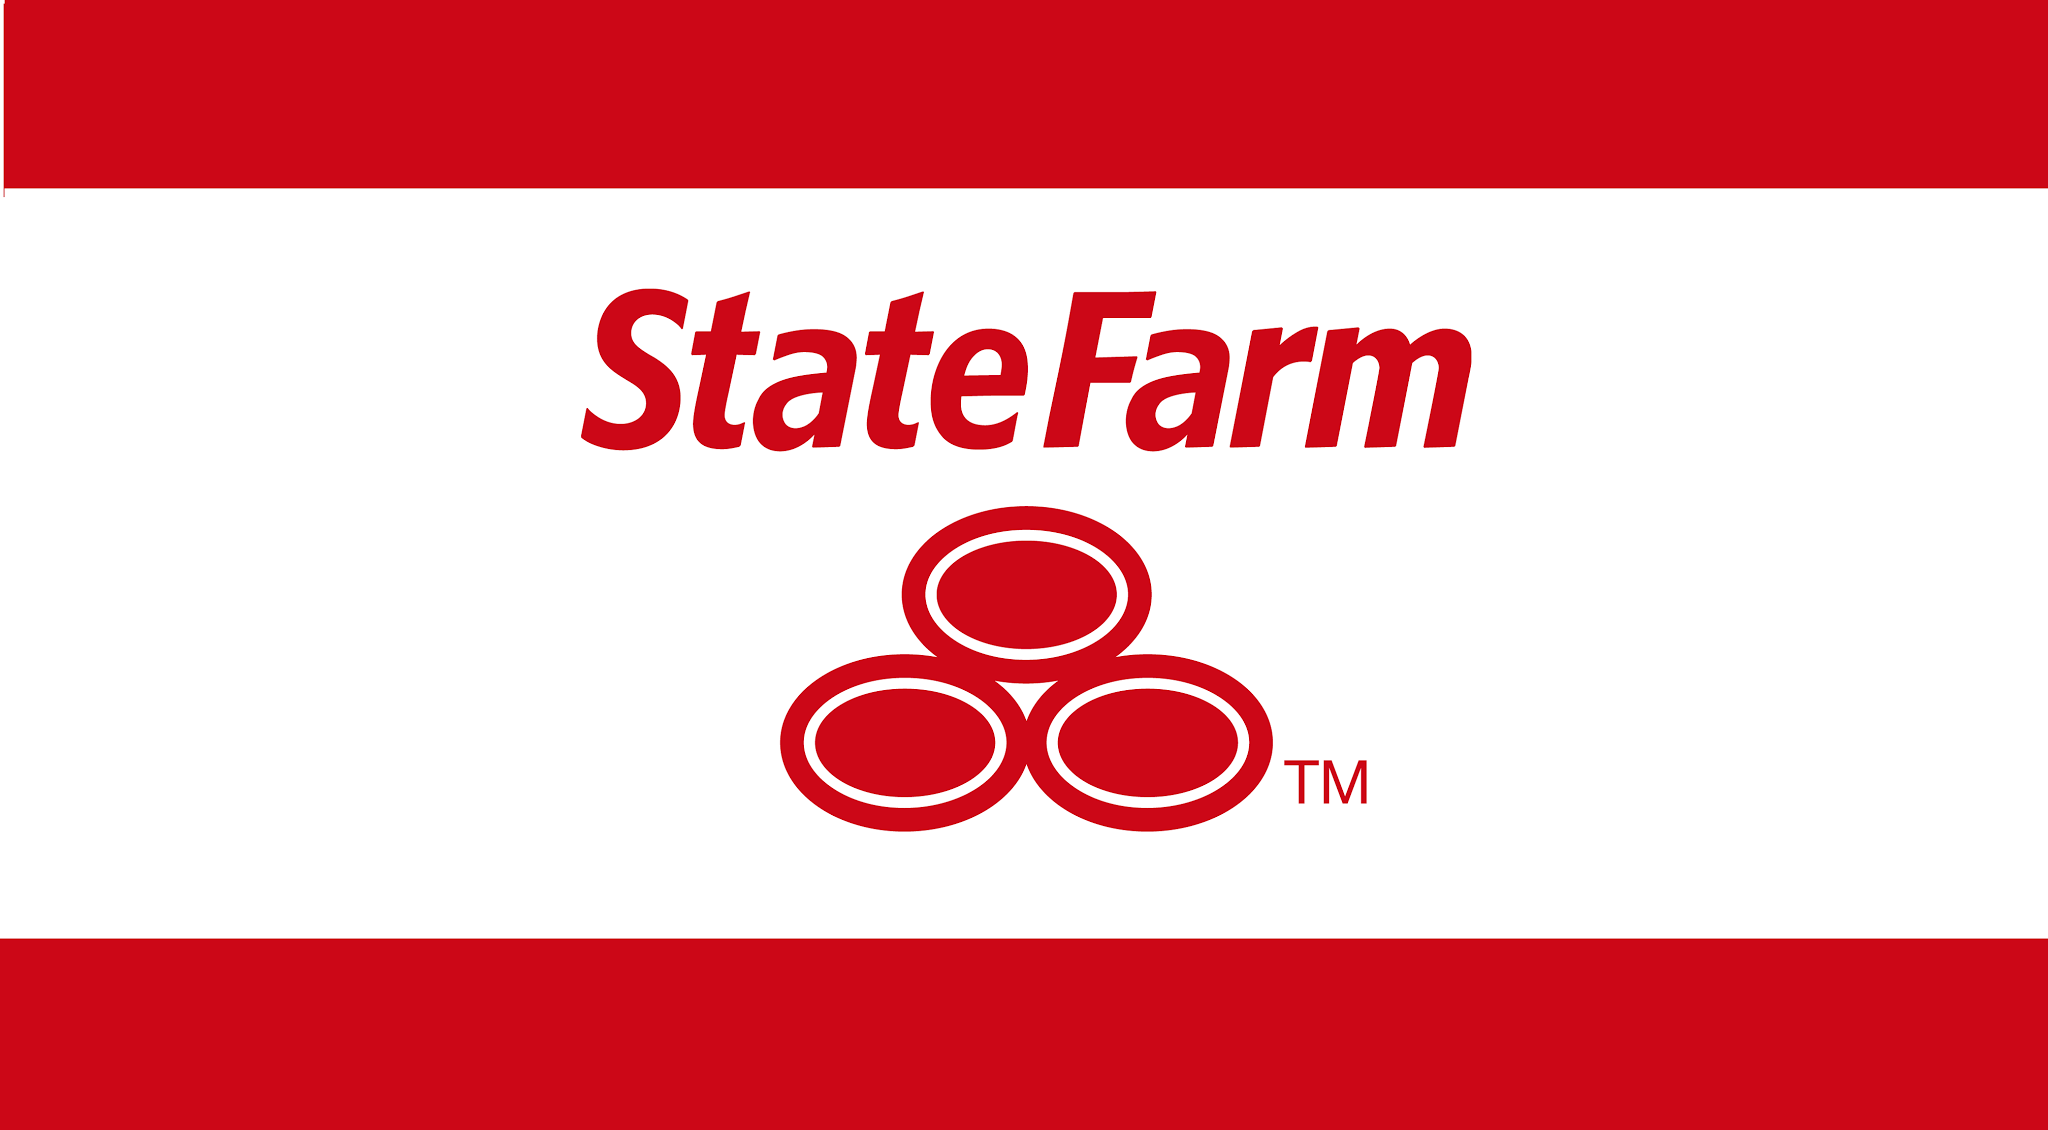 larry laino state farm agent larry laino state farm agent